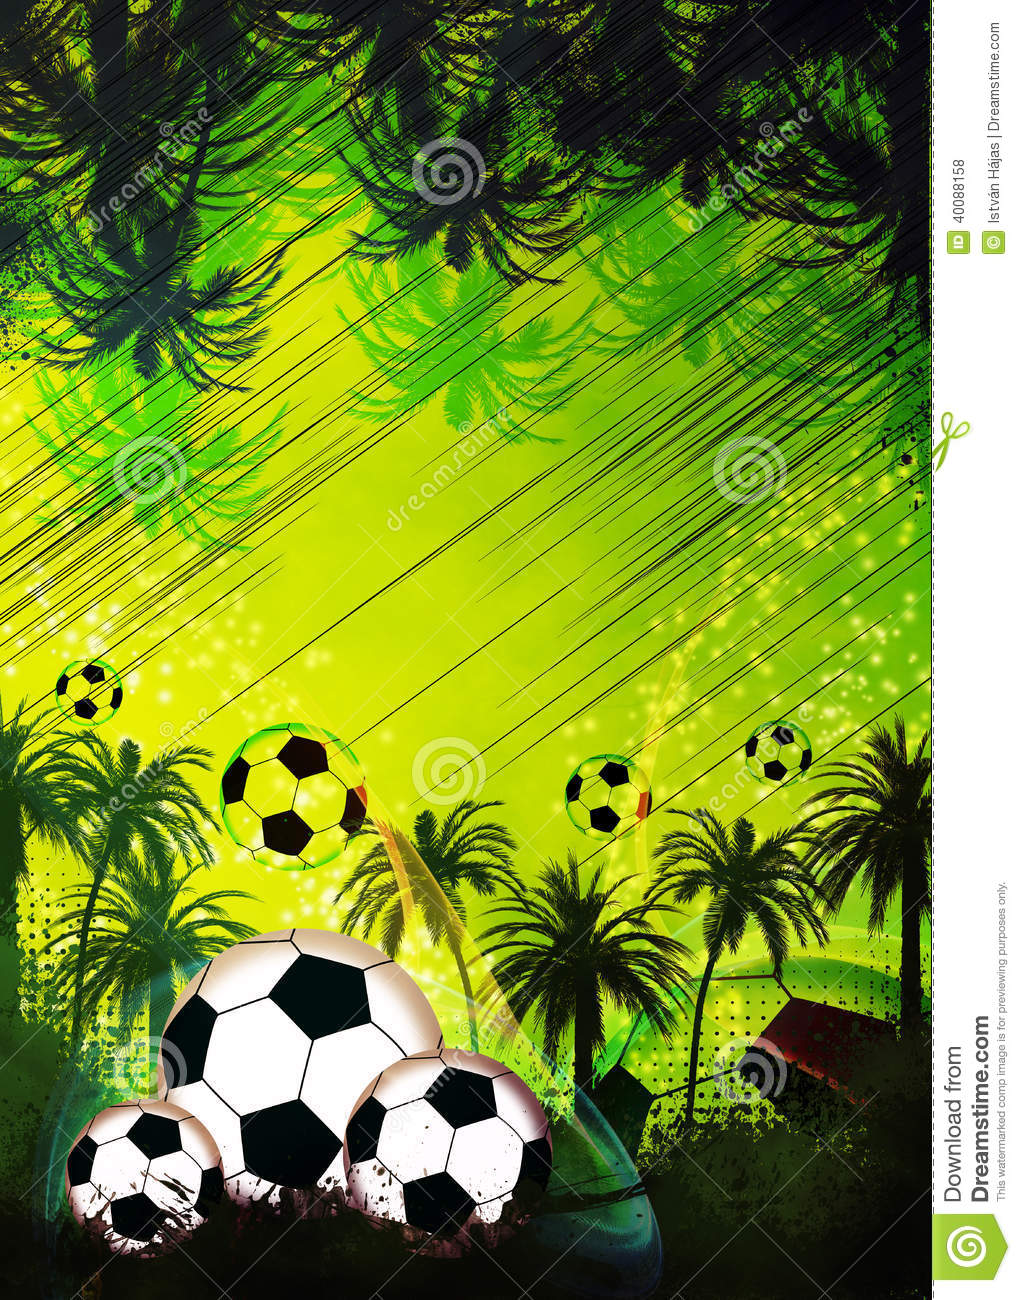 football or soccer background stock illustration